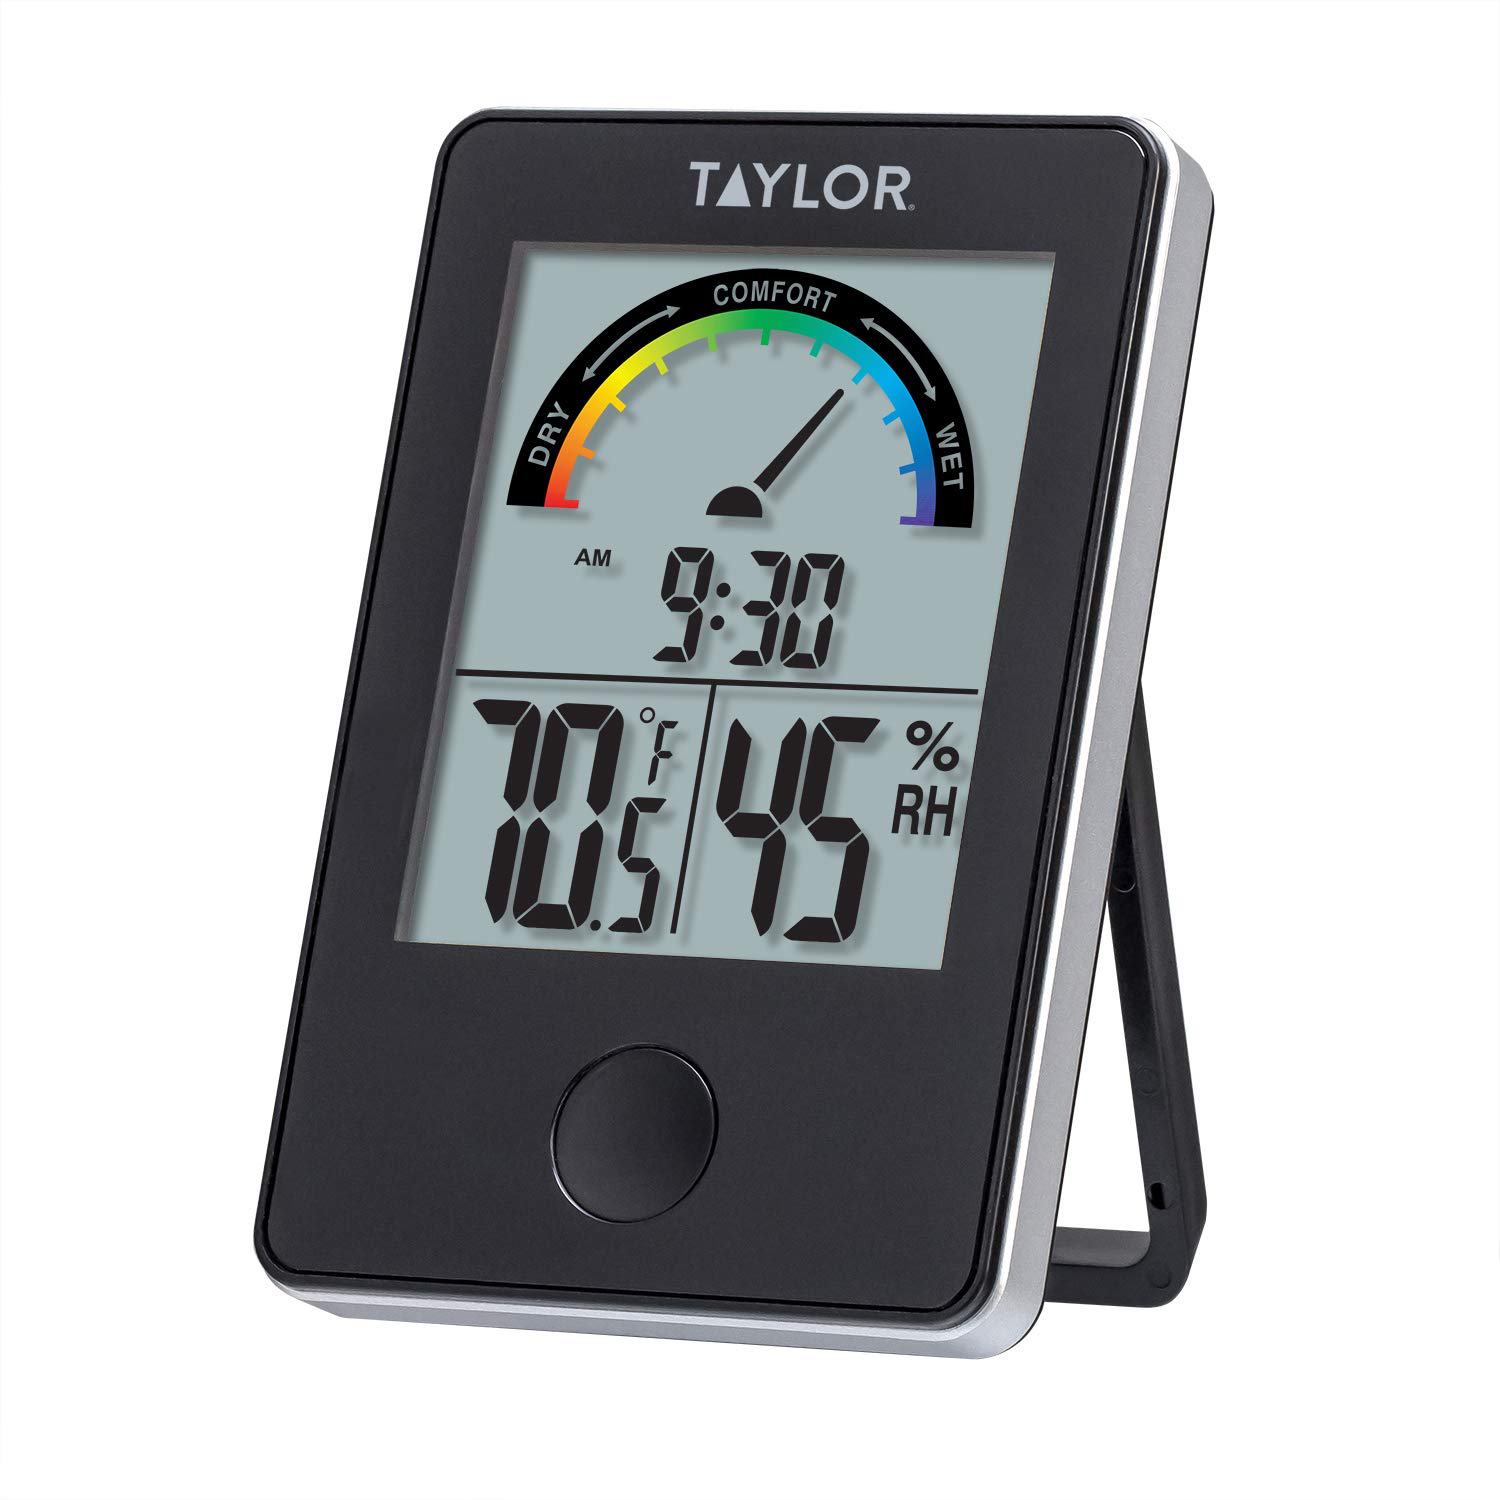 Digital Indoor Comfort Level Thermometer and Hygrometer LCD Clock